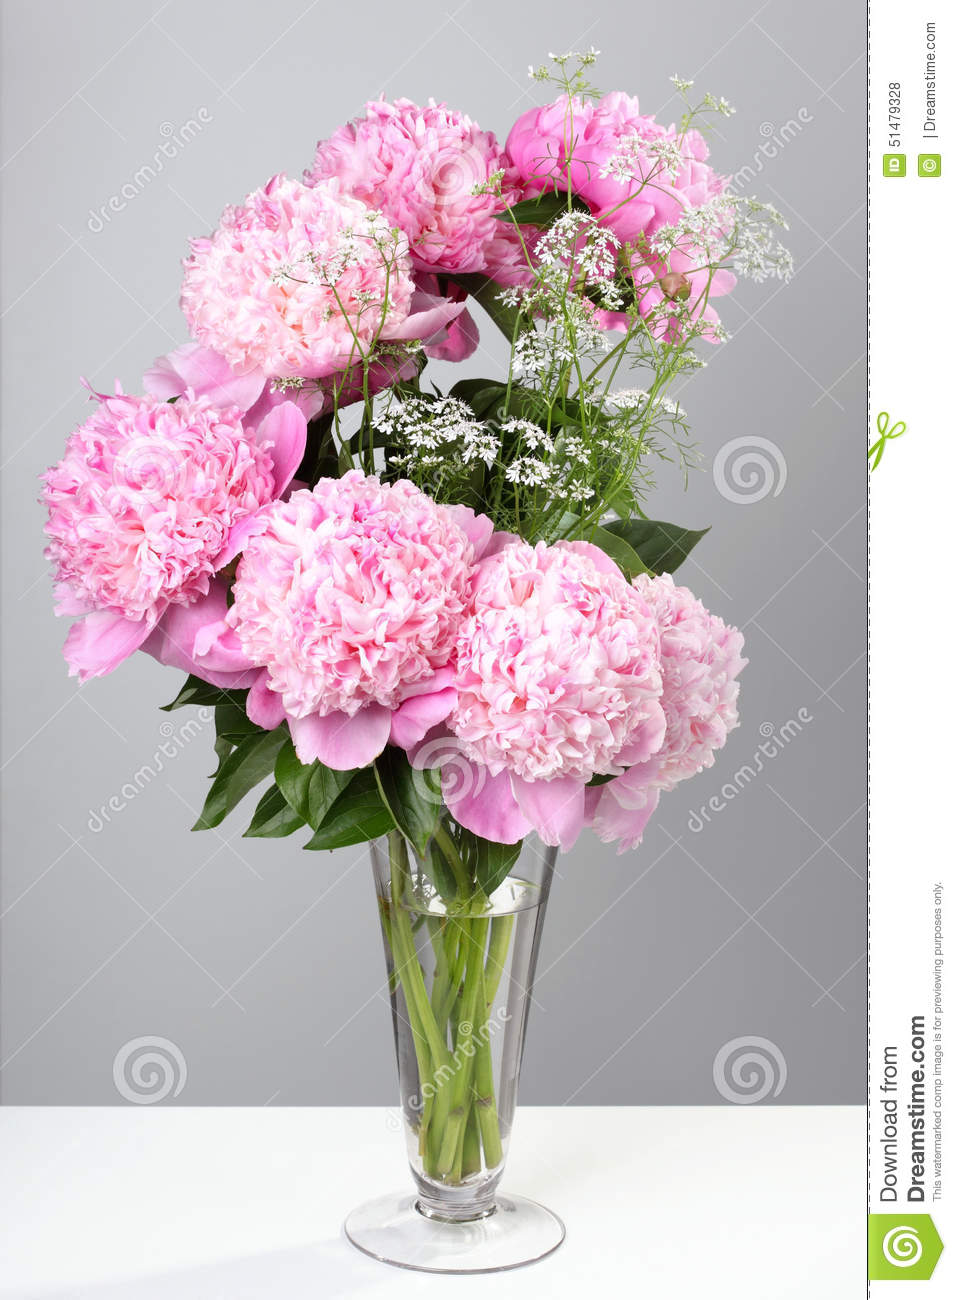 bouquet des pivoines roses dans un vase photo stock image du centrale cadeau 51479328. Black Bedroom Furniture Sets. Home Design Ideas